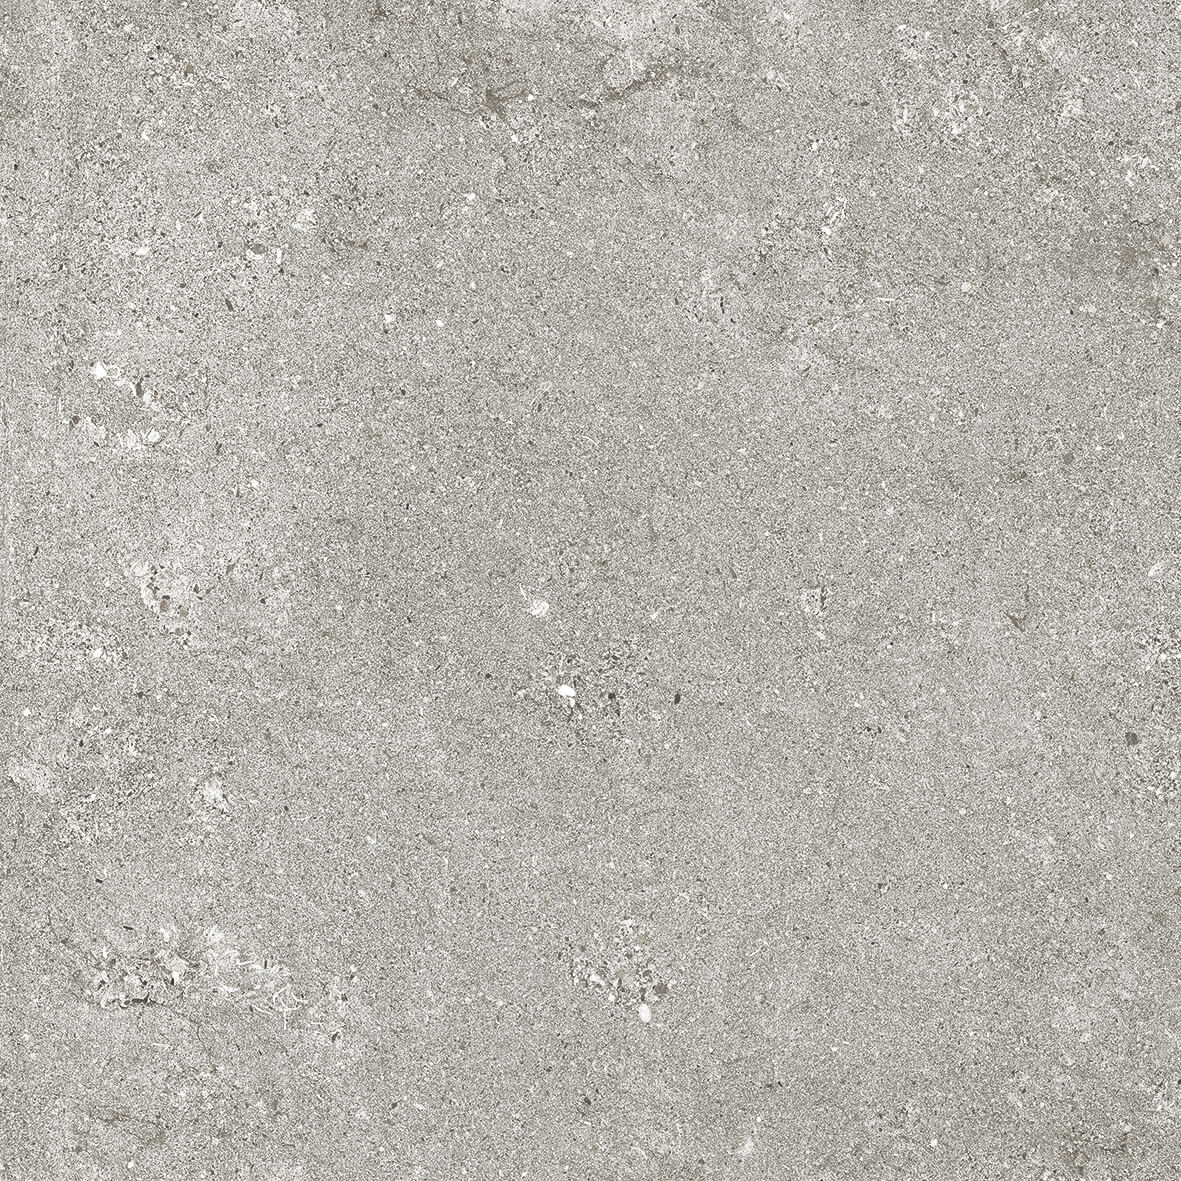 Tradition Pierre Grise Grip 600x600mm_Stiles_Product_Image